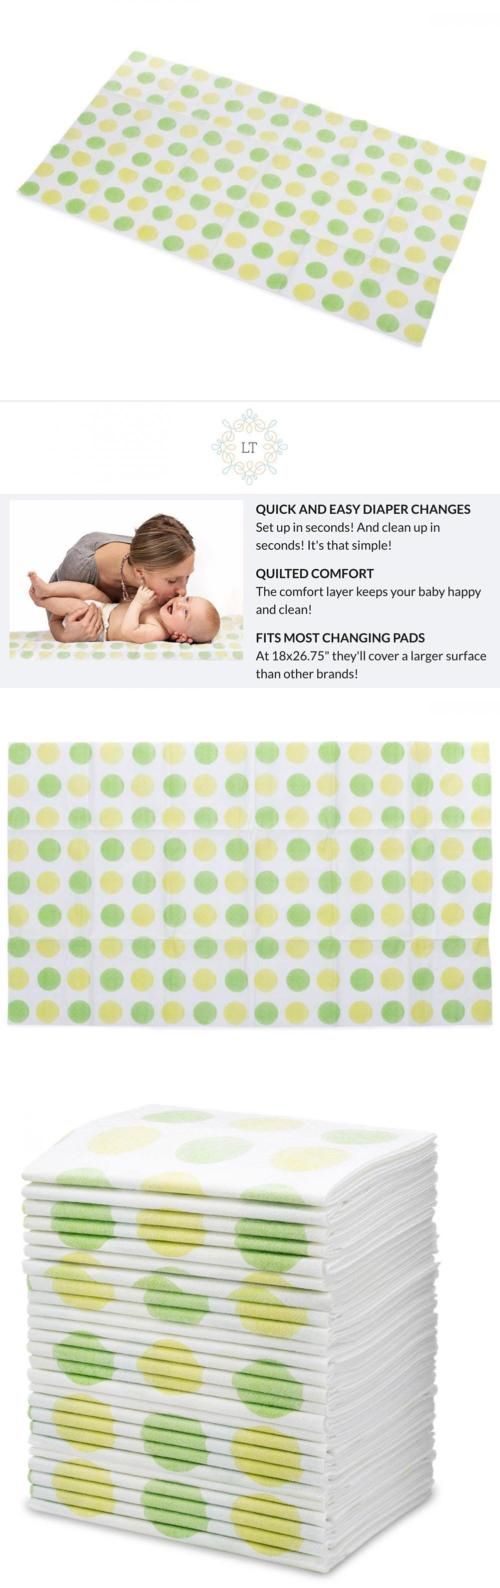 Changing Pads and Covers 66674 Little Things 25 Large Disposable